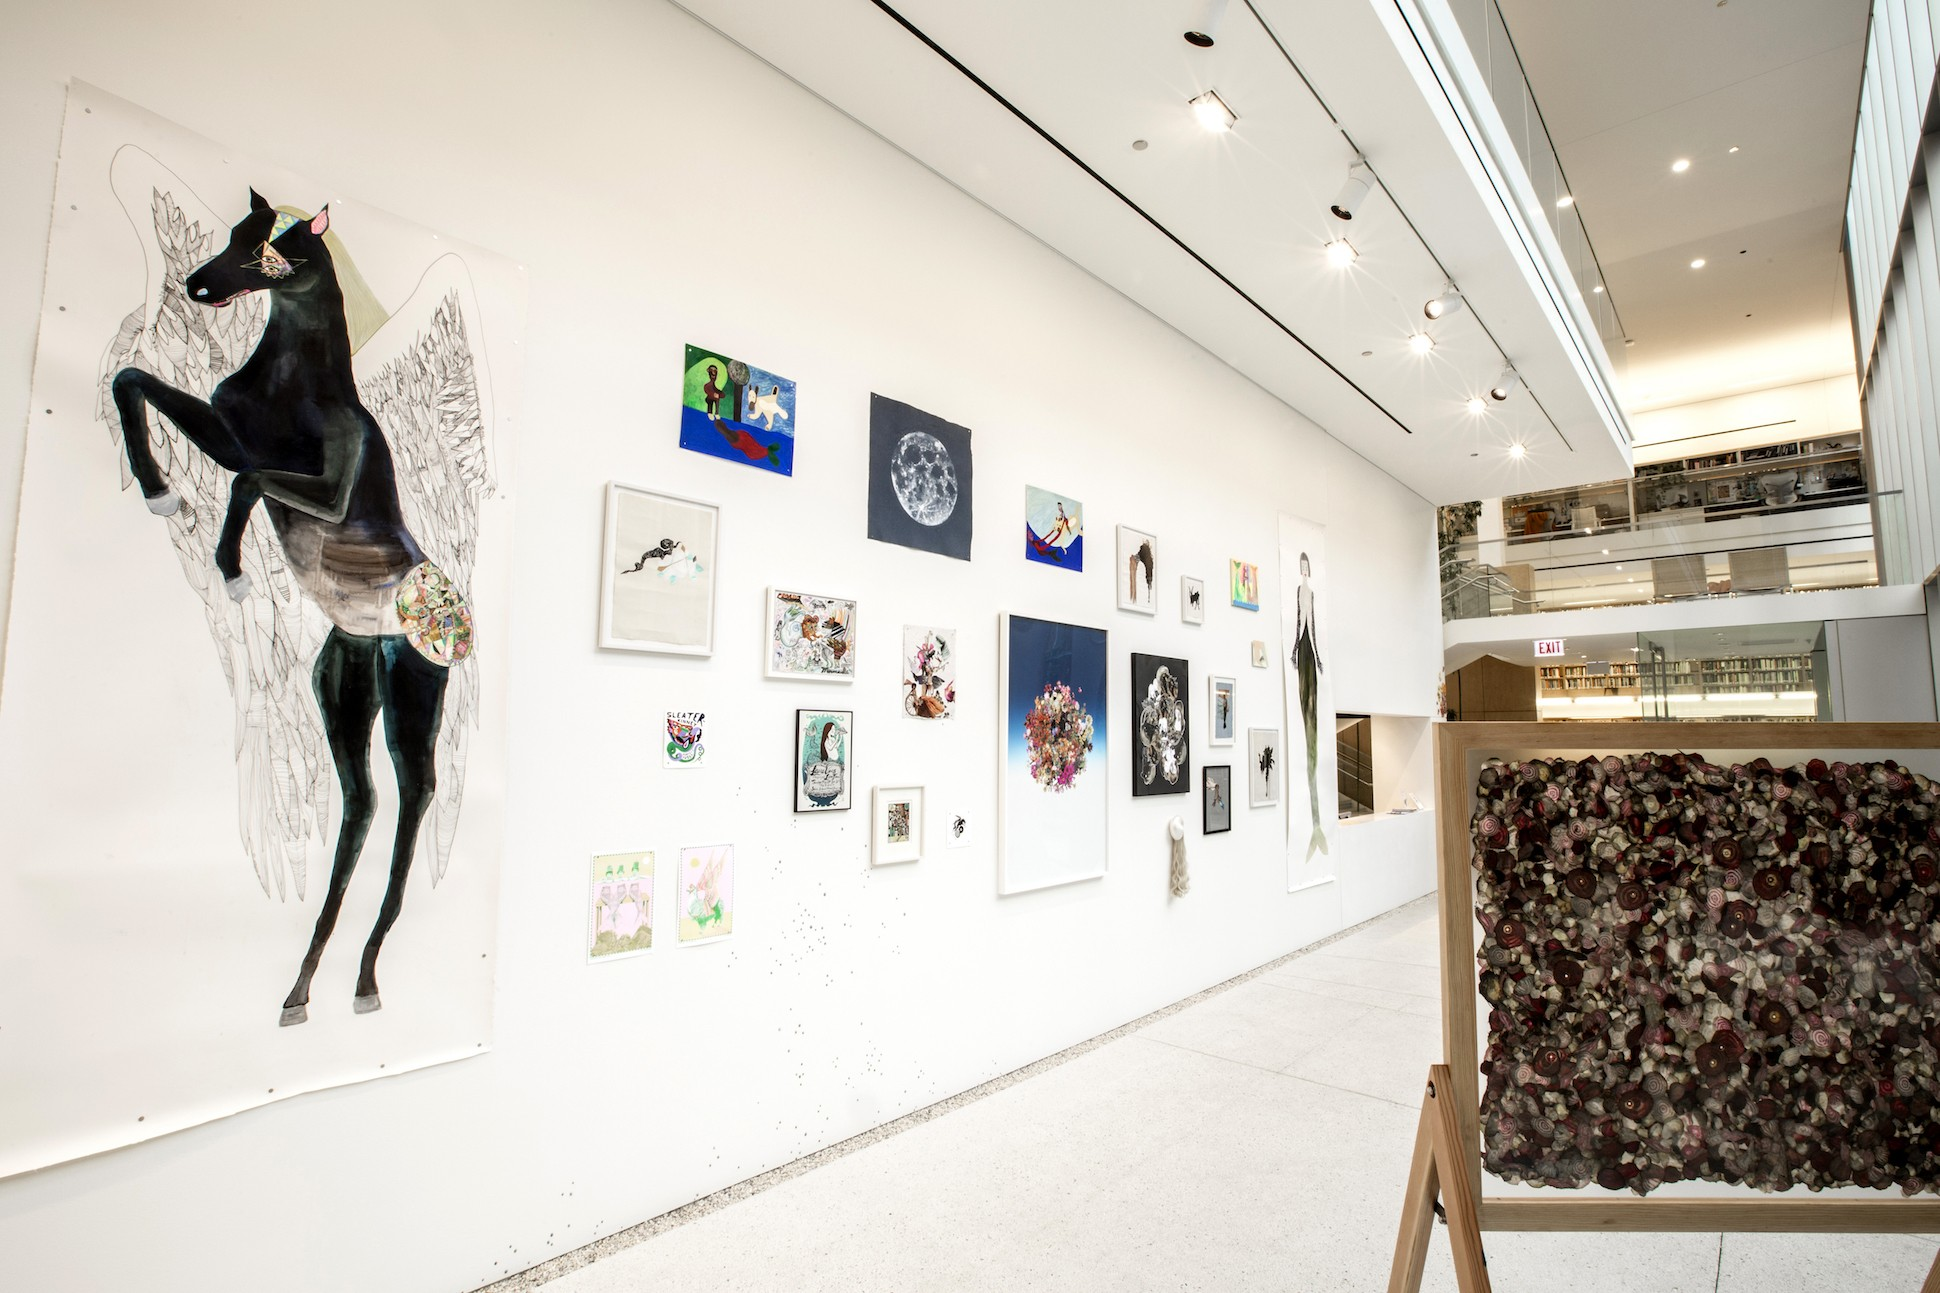 Gallery space of Pegasus and Mermaids installation, featuring large portraits of winged horses and mermaids.